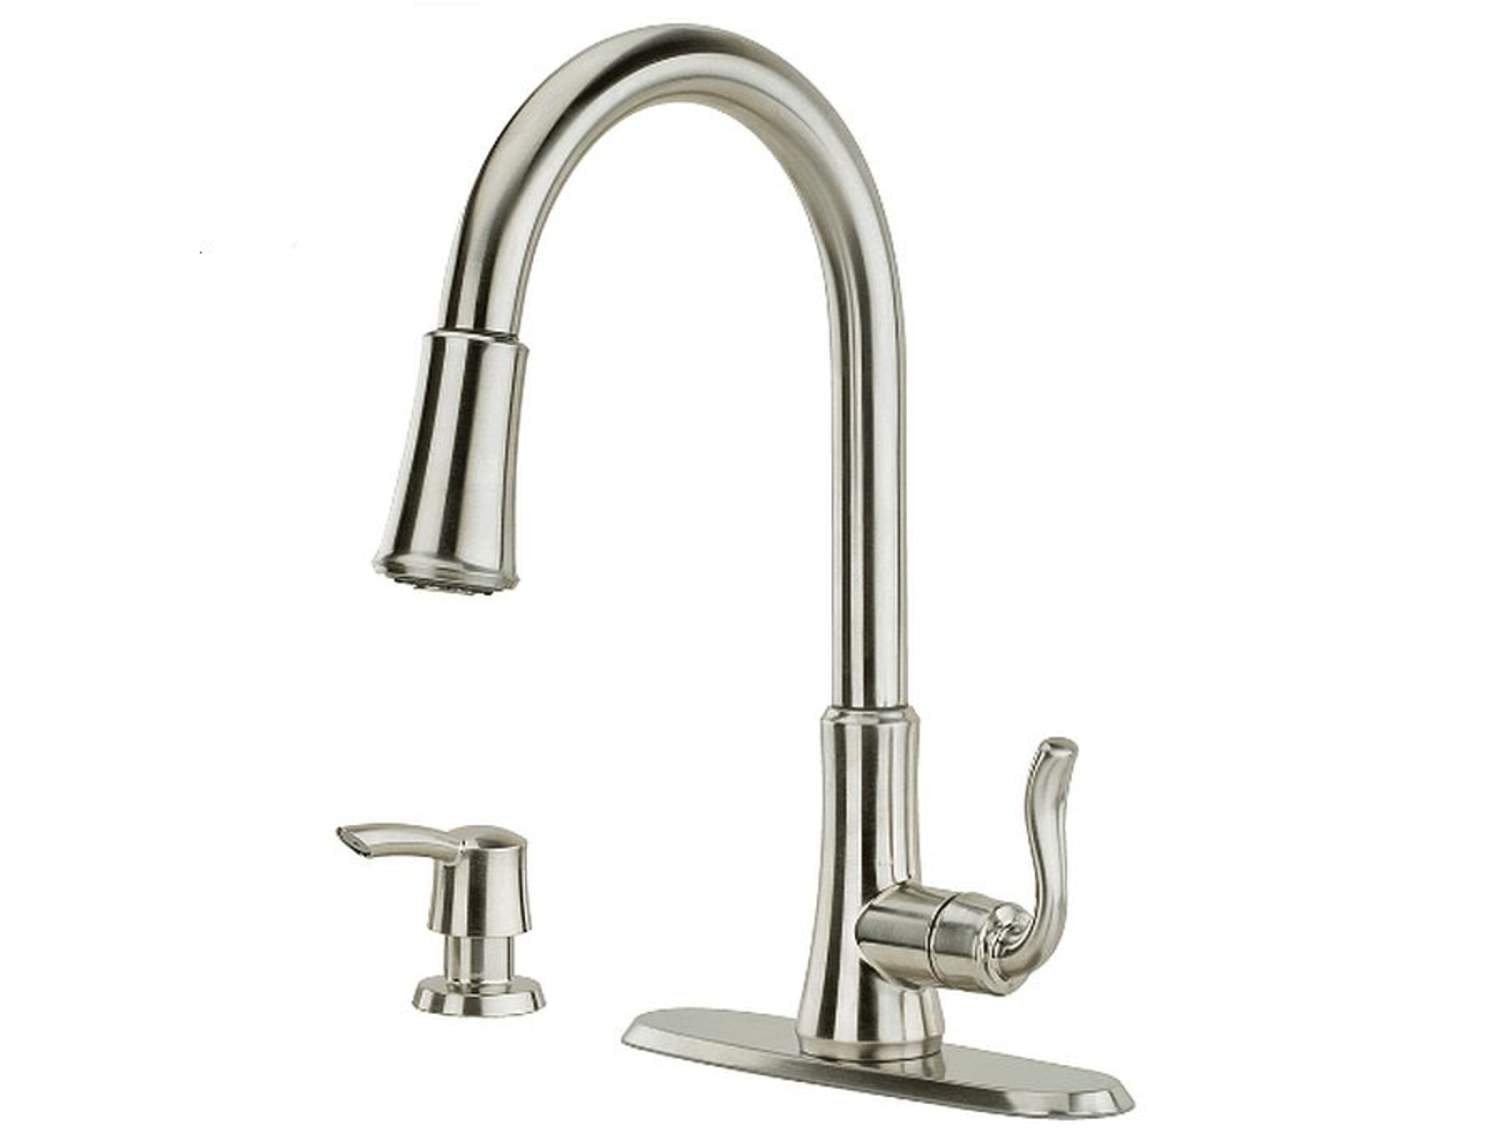 Pfister F5297cgs Cagney 1 Handle Pull Down Kitchen Faucet